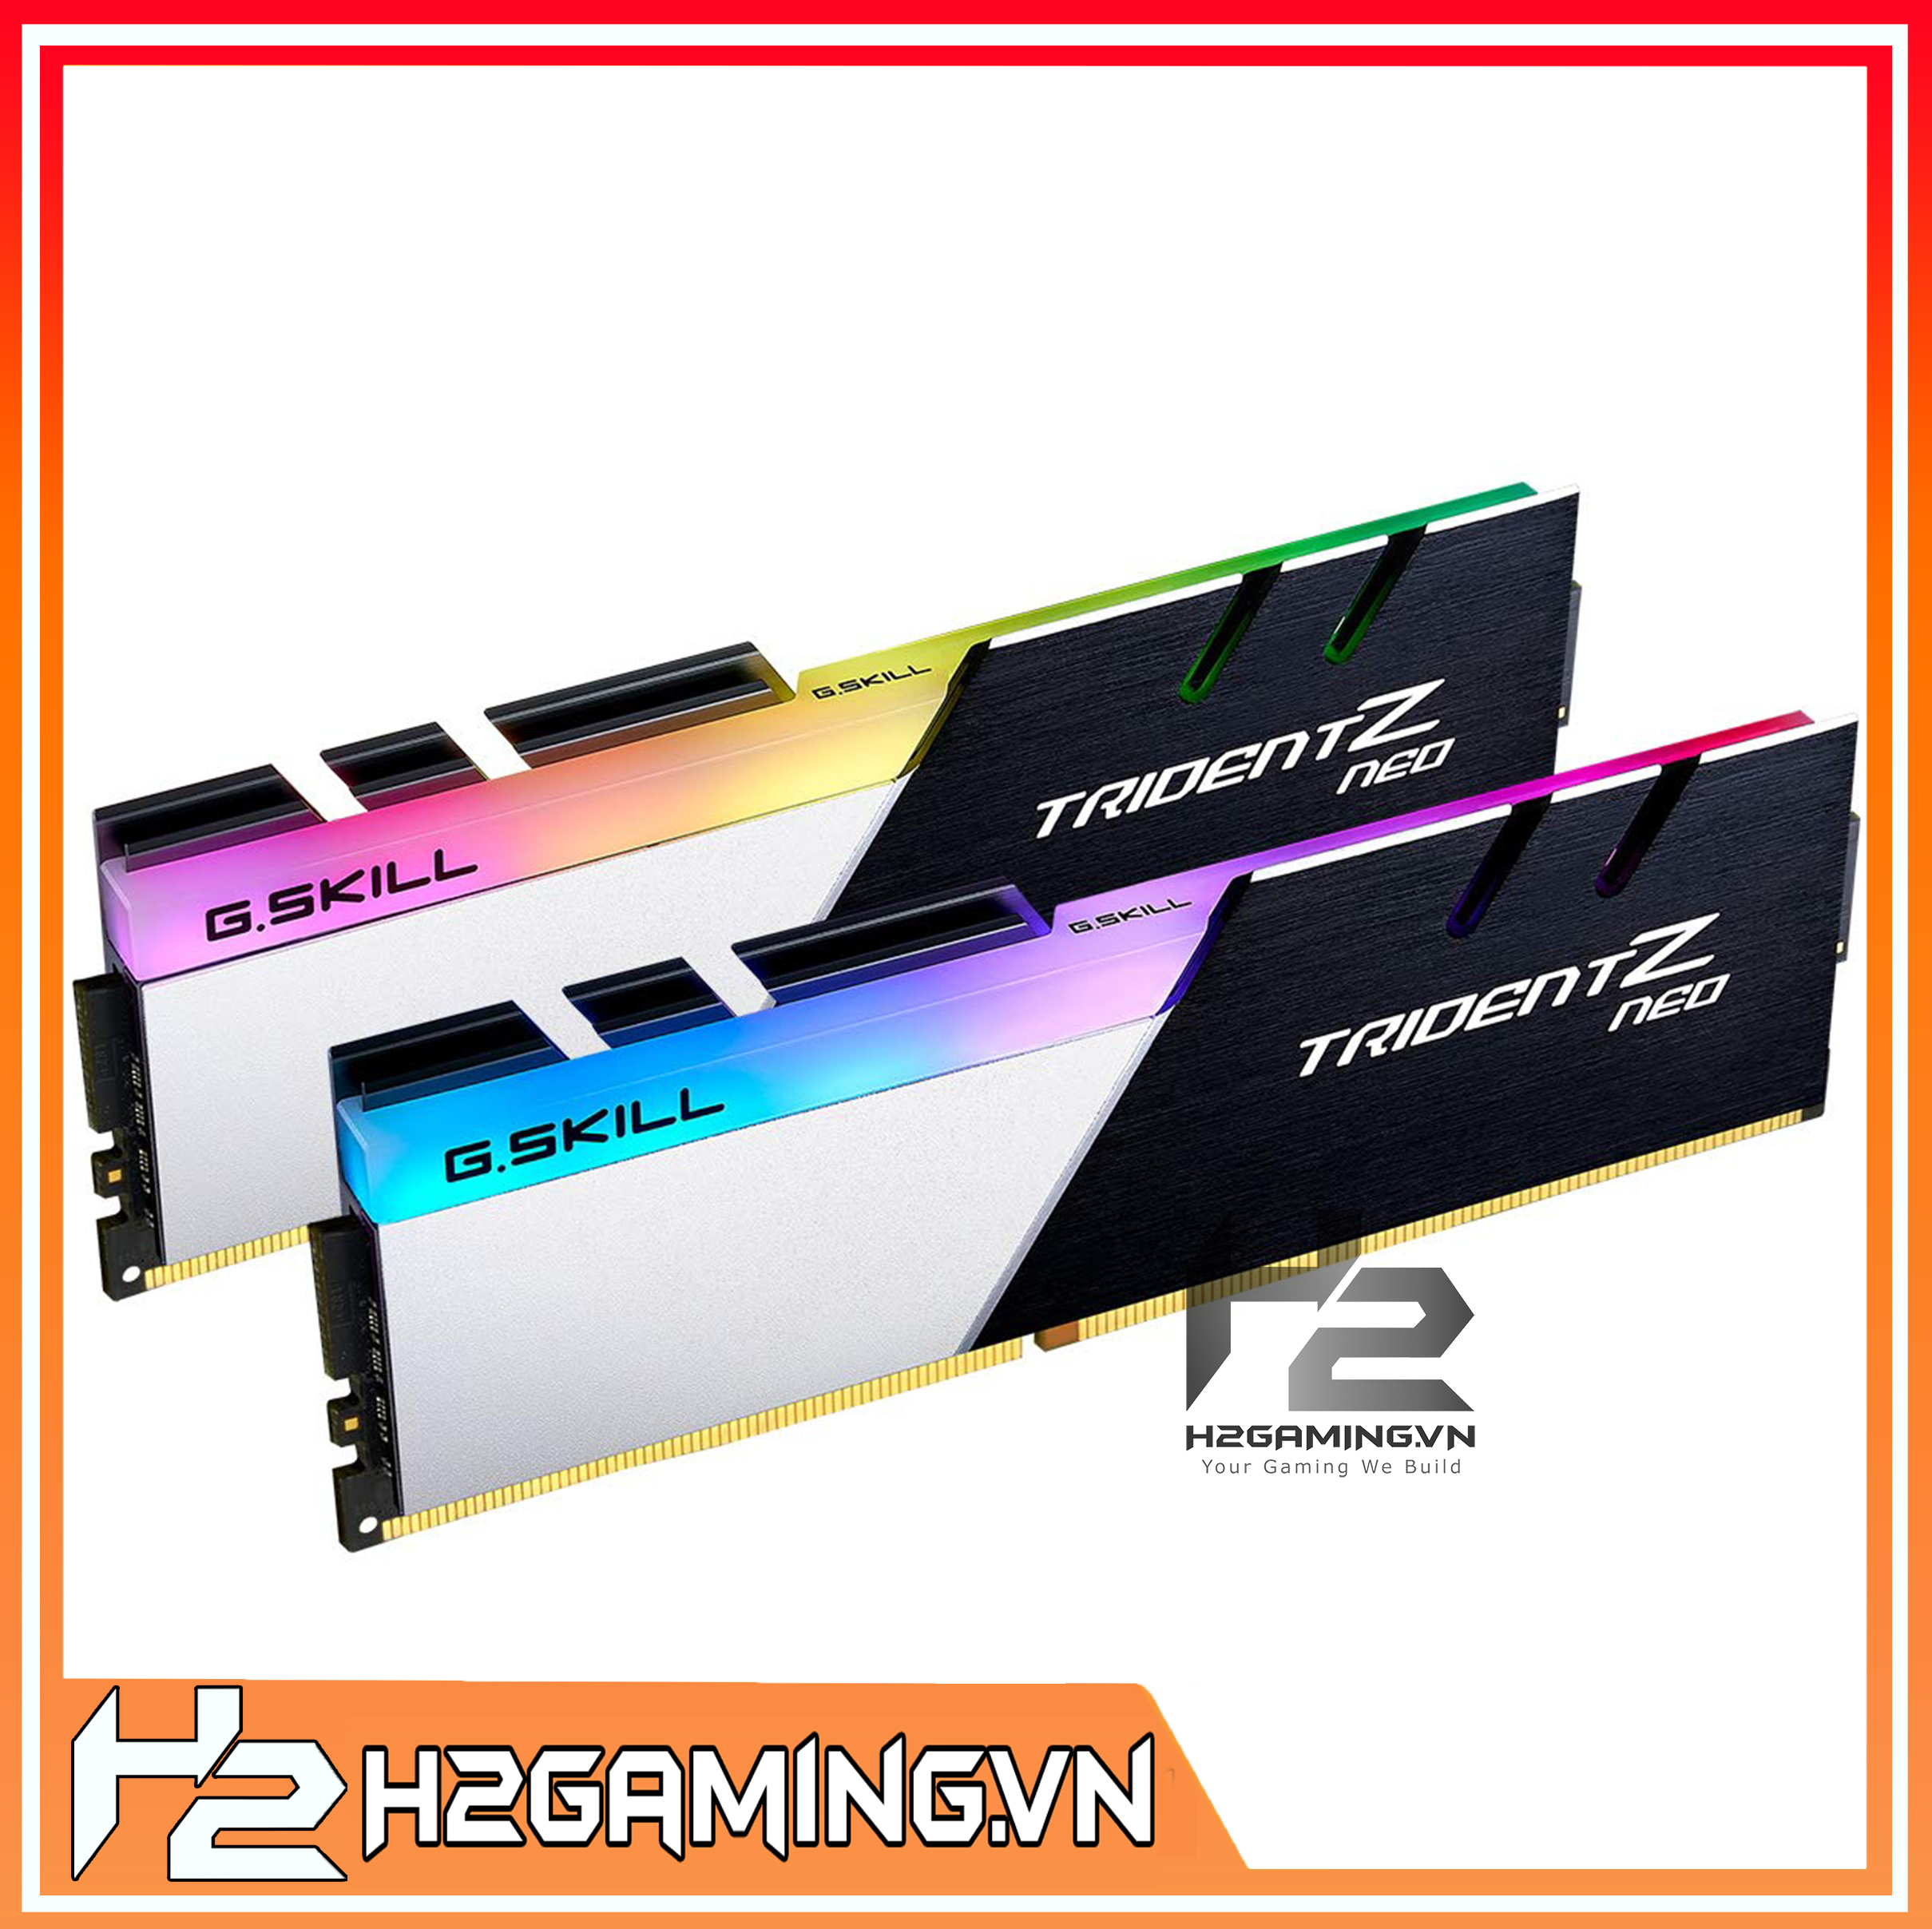 Ram_PC_Gksill_Enhanced_Performance_Series_-_Trident_Z_Neo_LED_RGB_Kit_2x8GB_DDR4_3600_Mhz_3